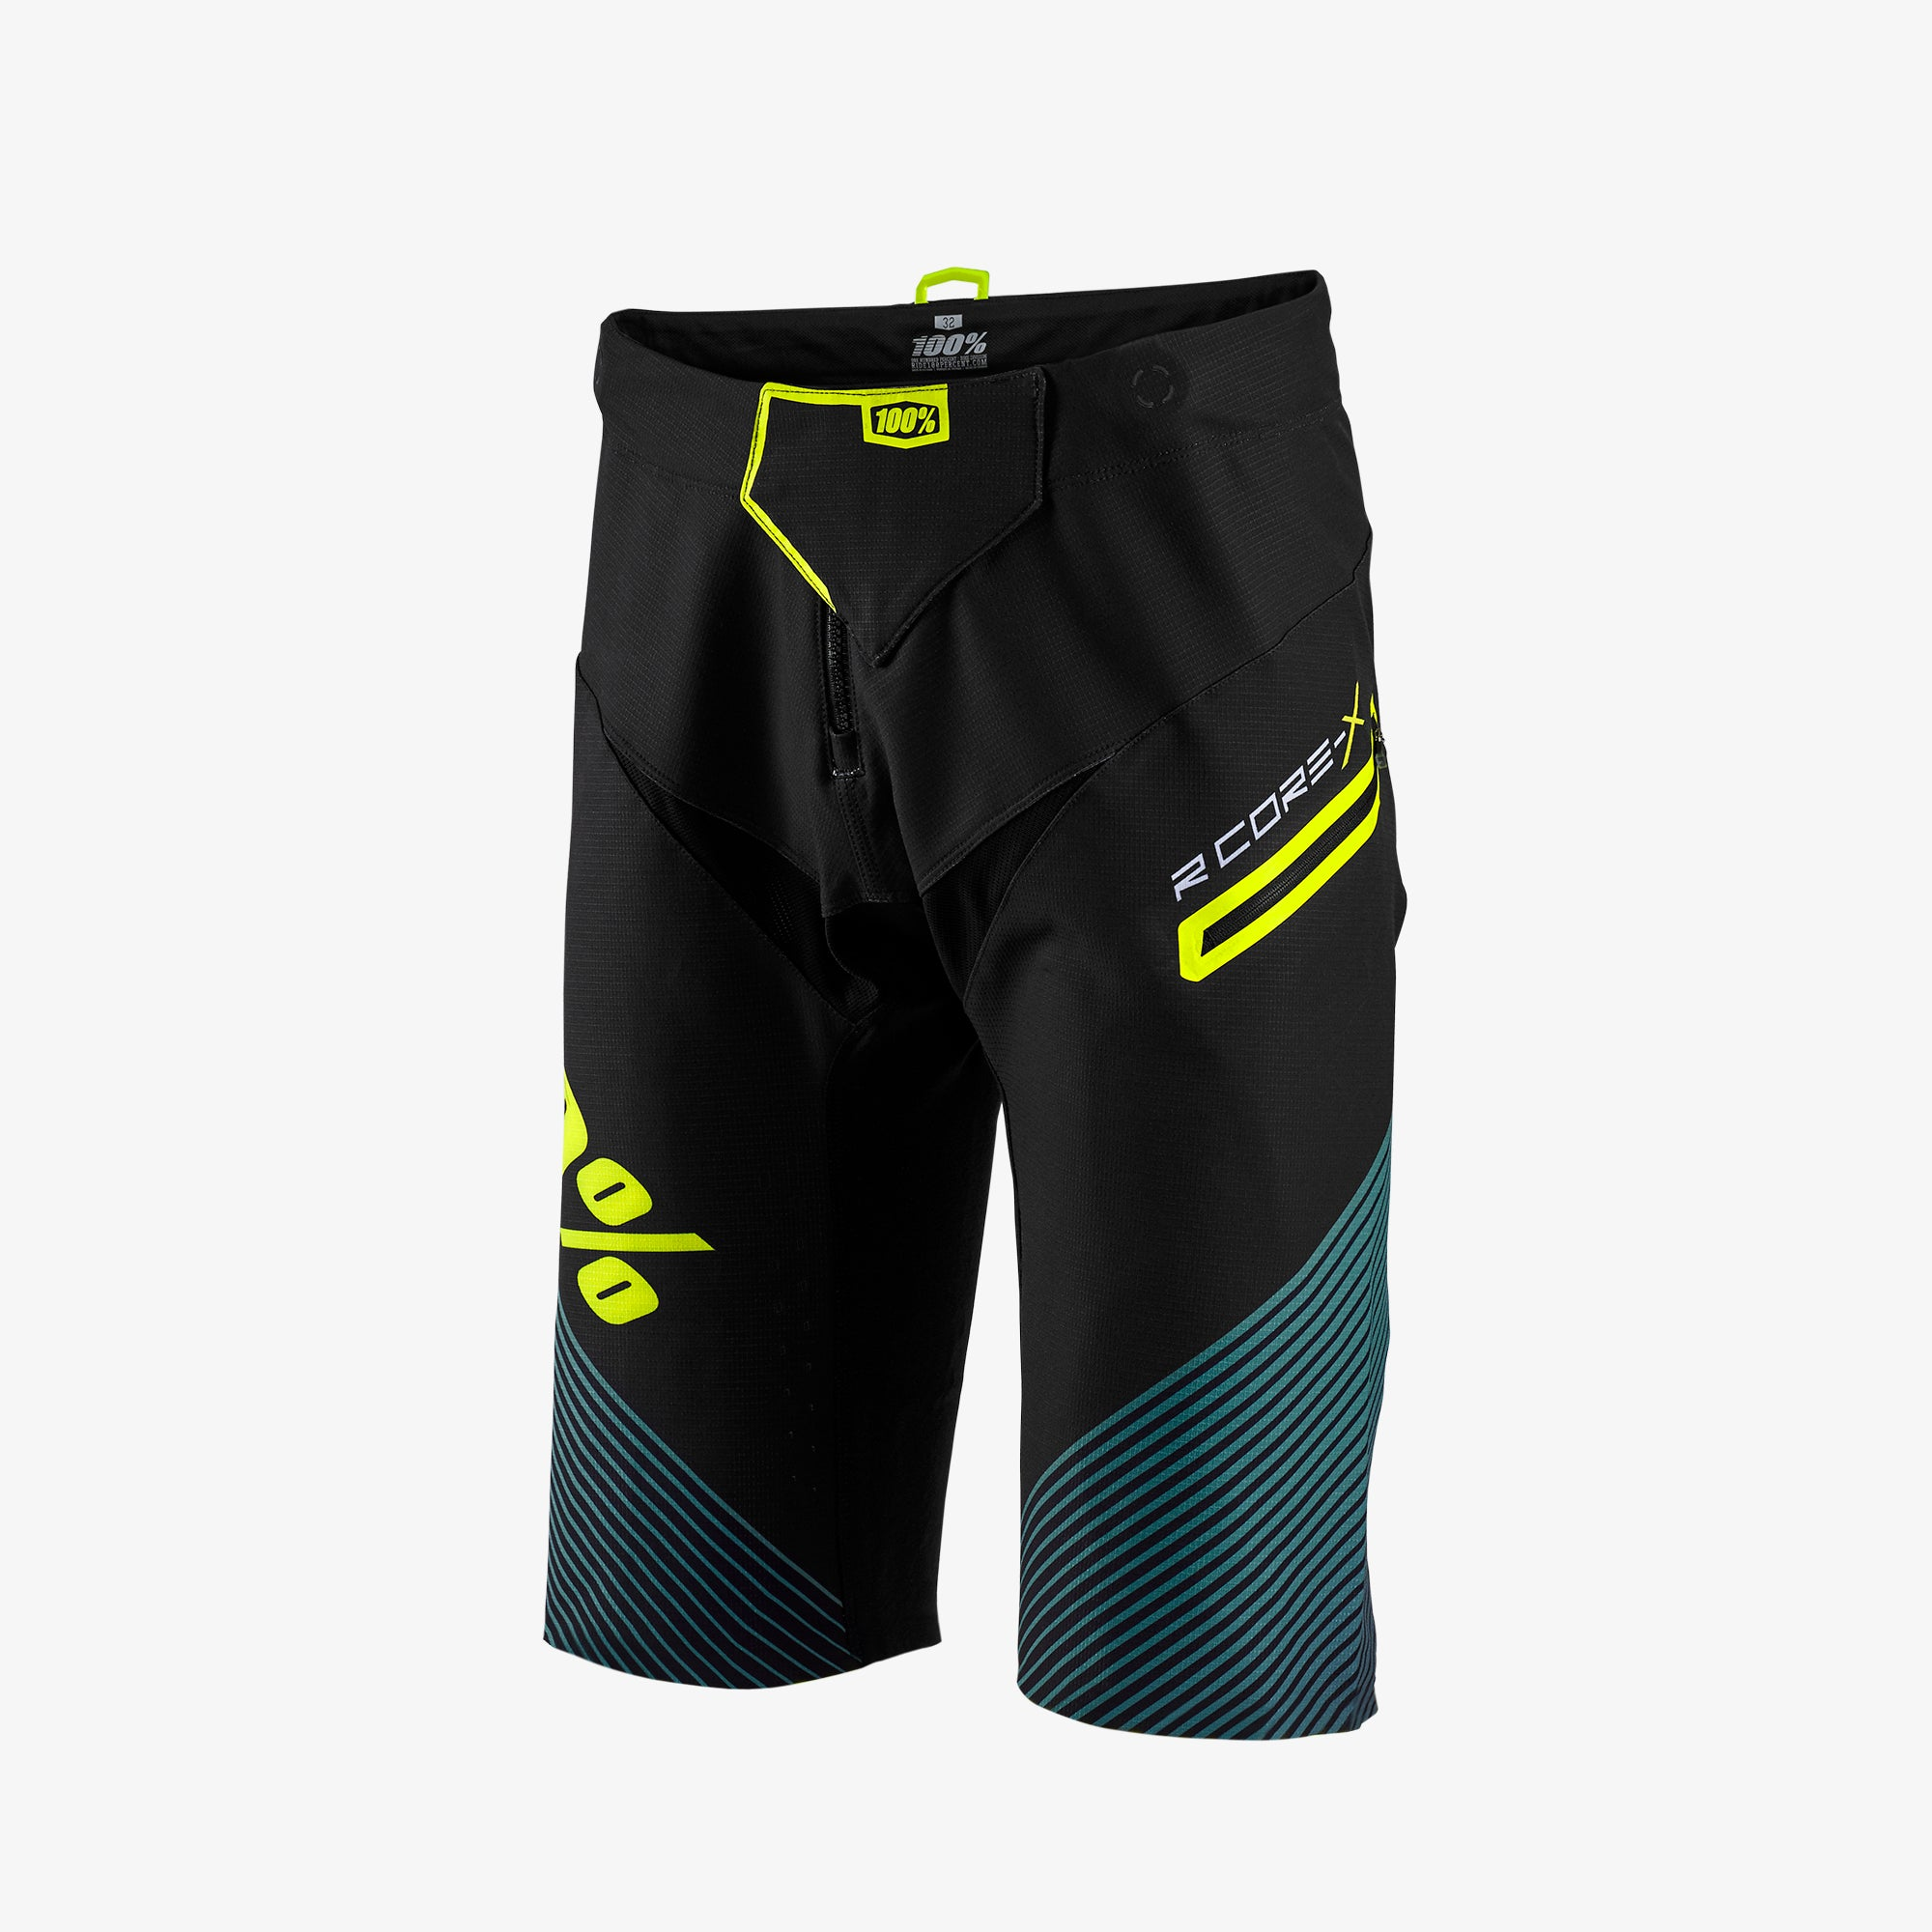 1f44865a16ee04 R-CORE-X Black Downhill Mountain Bike Shorts